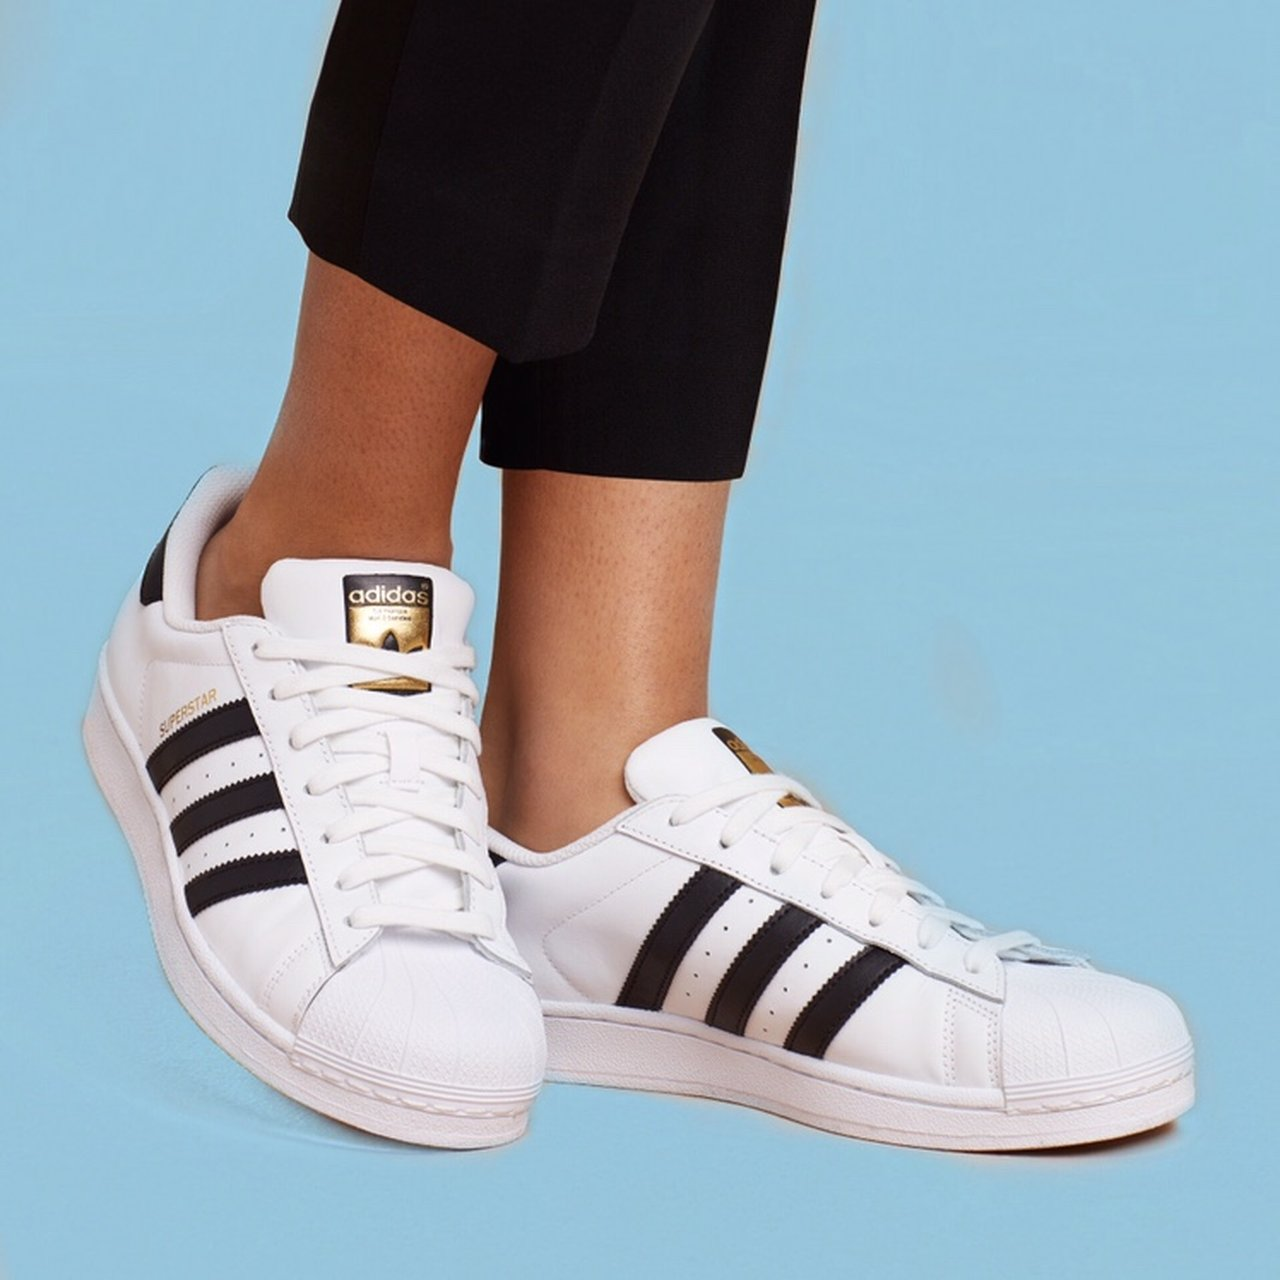 0536d2bcbe37 Adidas superstar sneakers 👟 gently